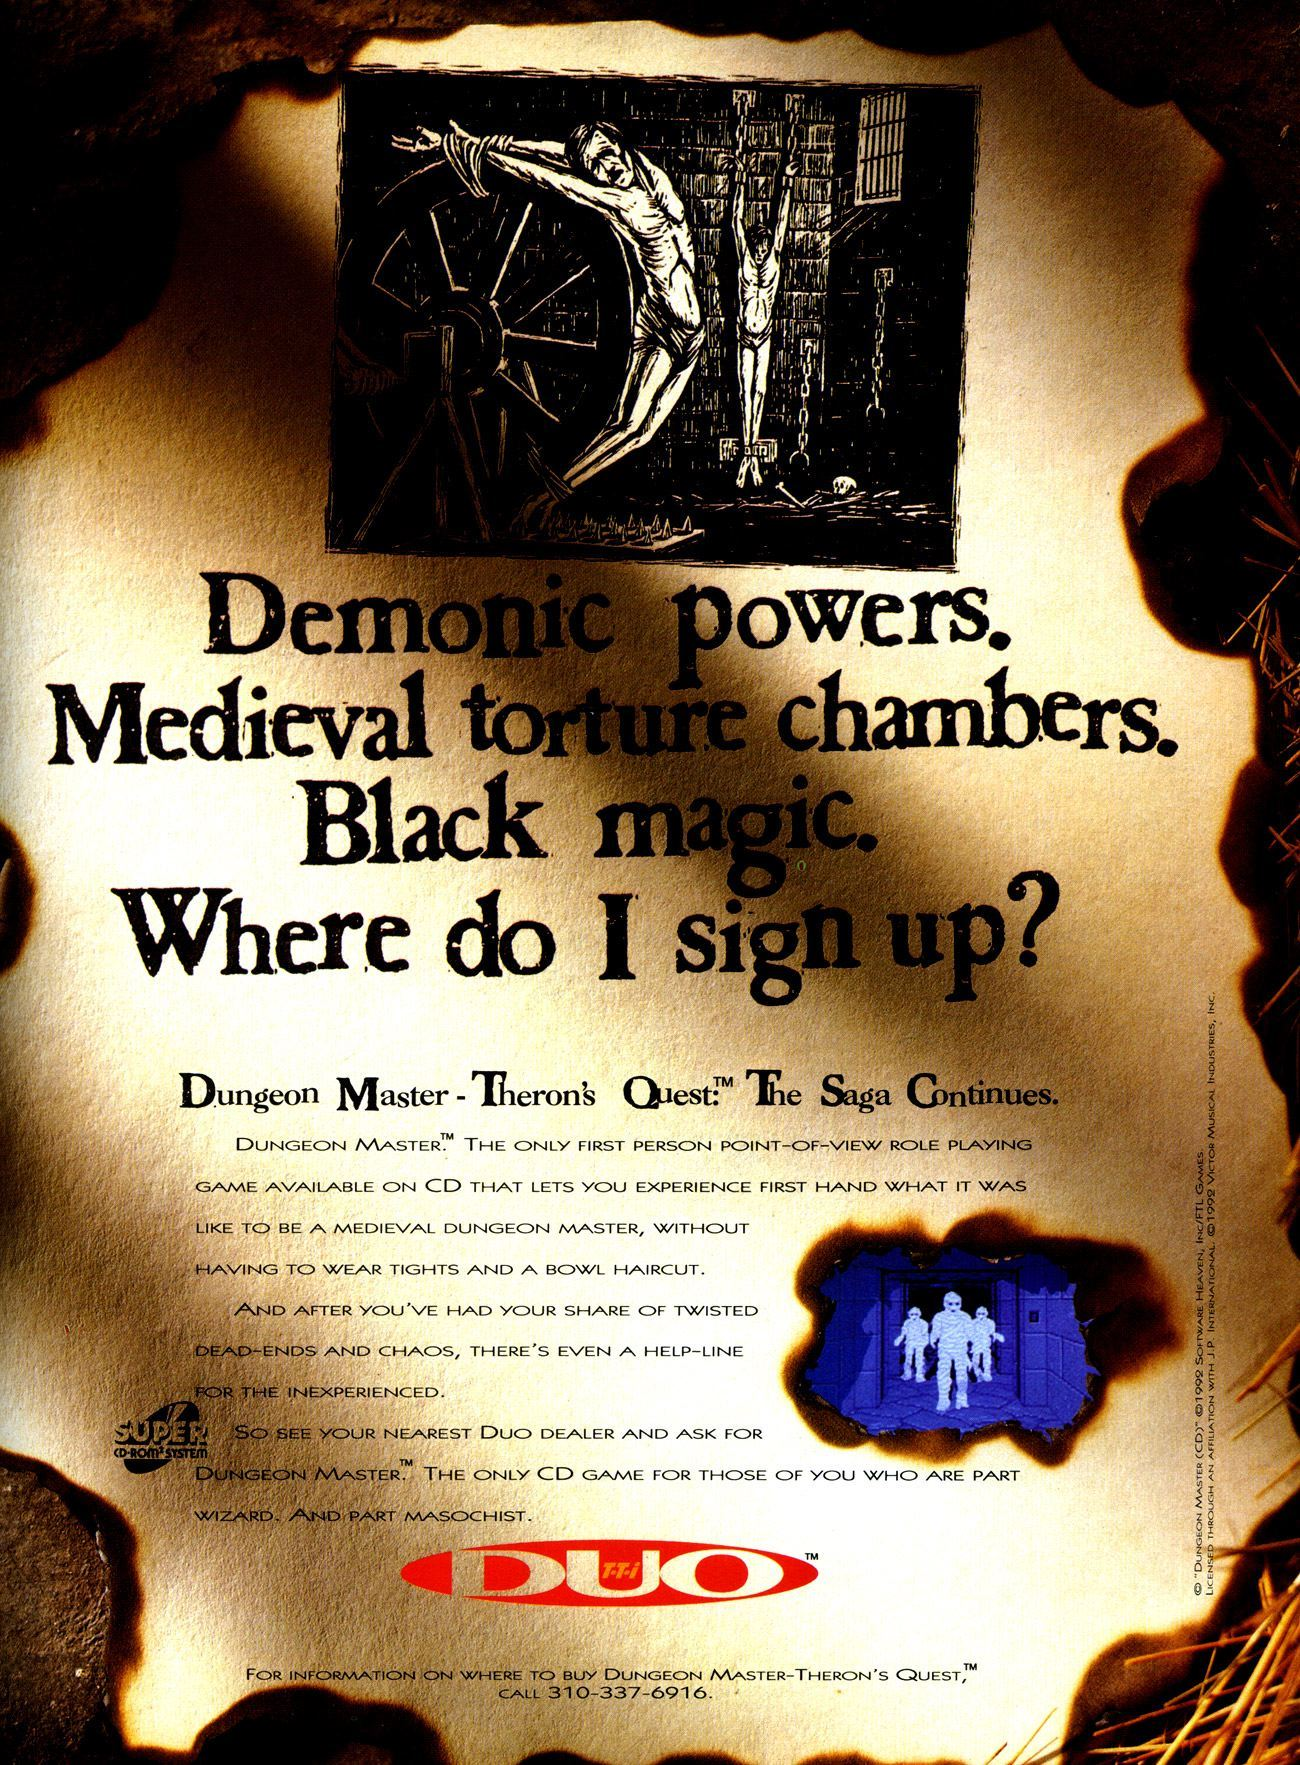 Theron's Quest Advertisement published in American magazine 'Electronic Gaming Monthly', Issue #47 Vol 6 No 6 June 1993, Page 77